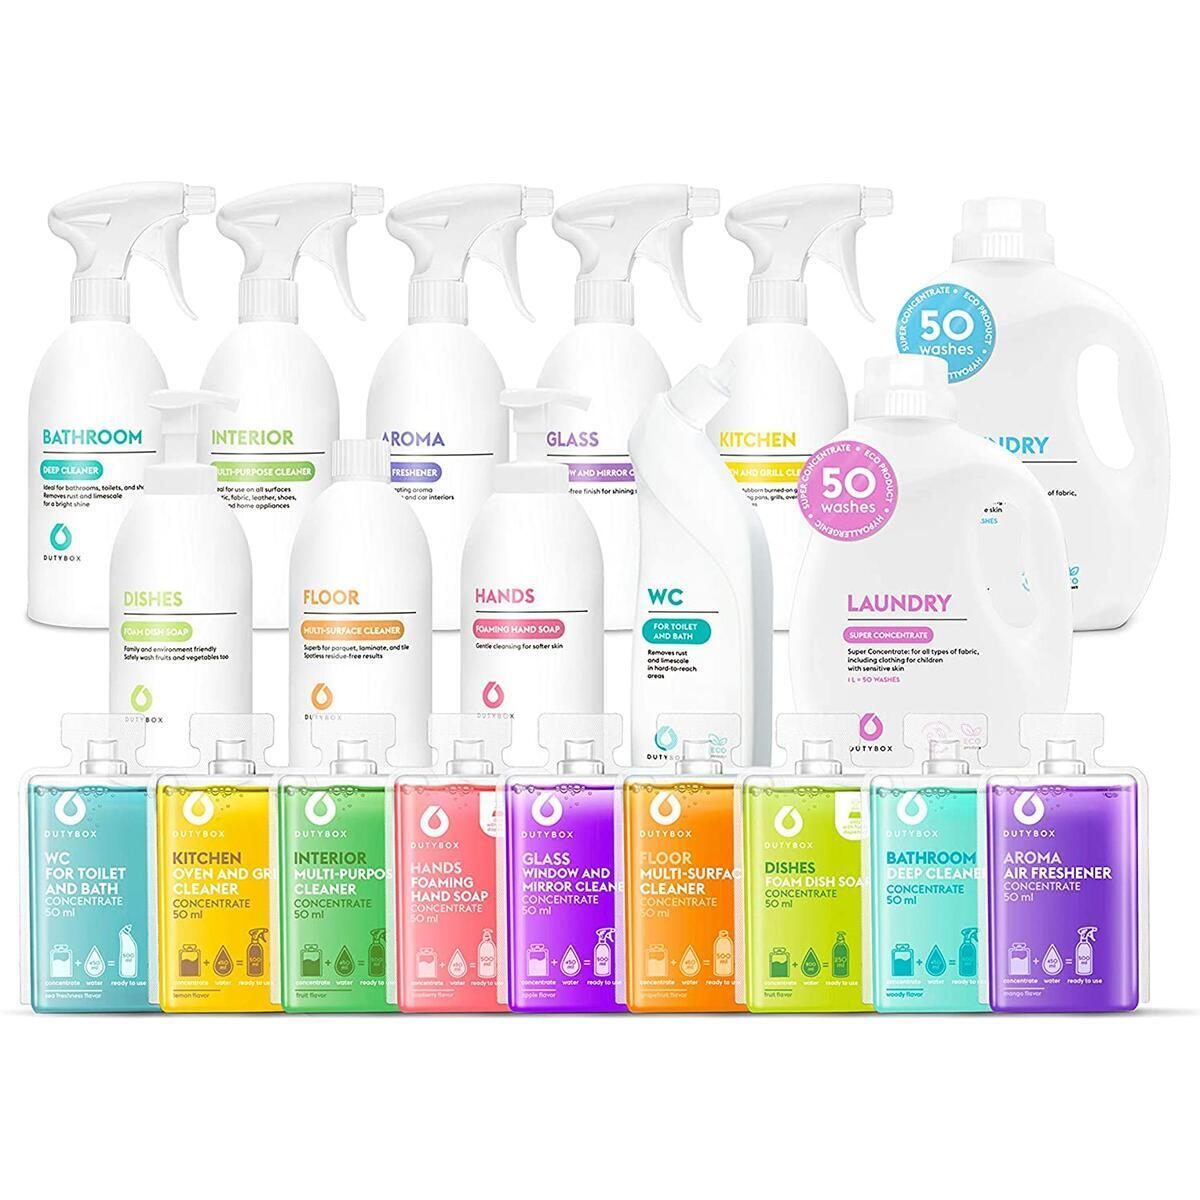 DutyBox Starter Pack - Household Cleaning Supplies, All Purpose Set of Everyday Cleaners, Multi-Surface Cleaner for Bathroom, Kitchen, Dining Room and Laundry (11 Products, 6 Month Family Supply)